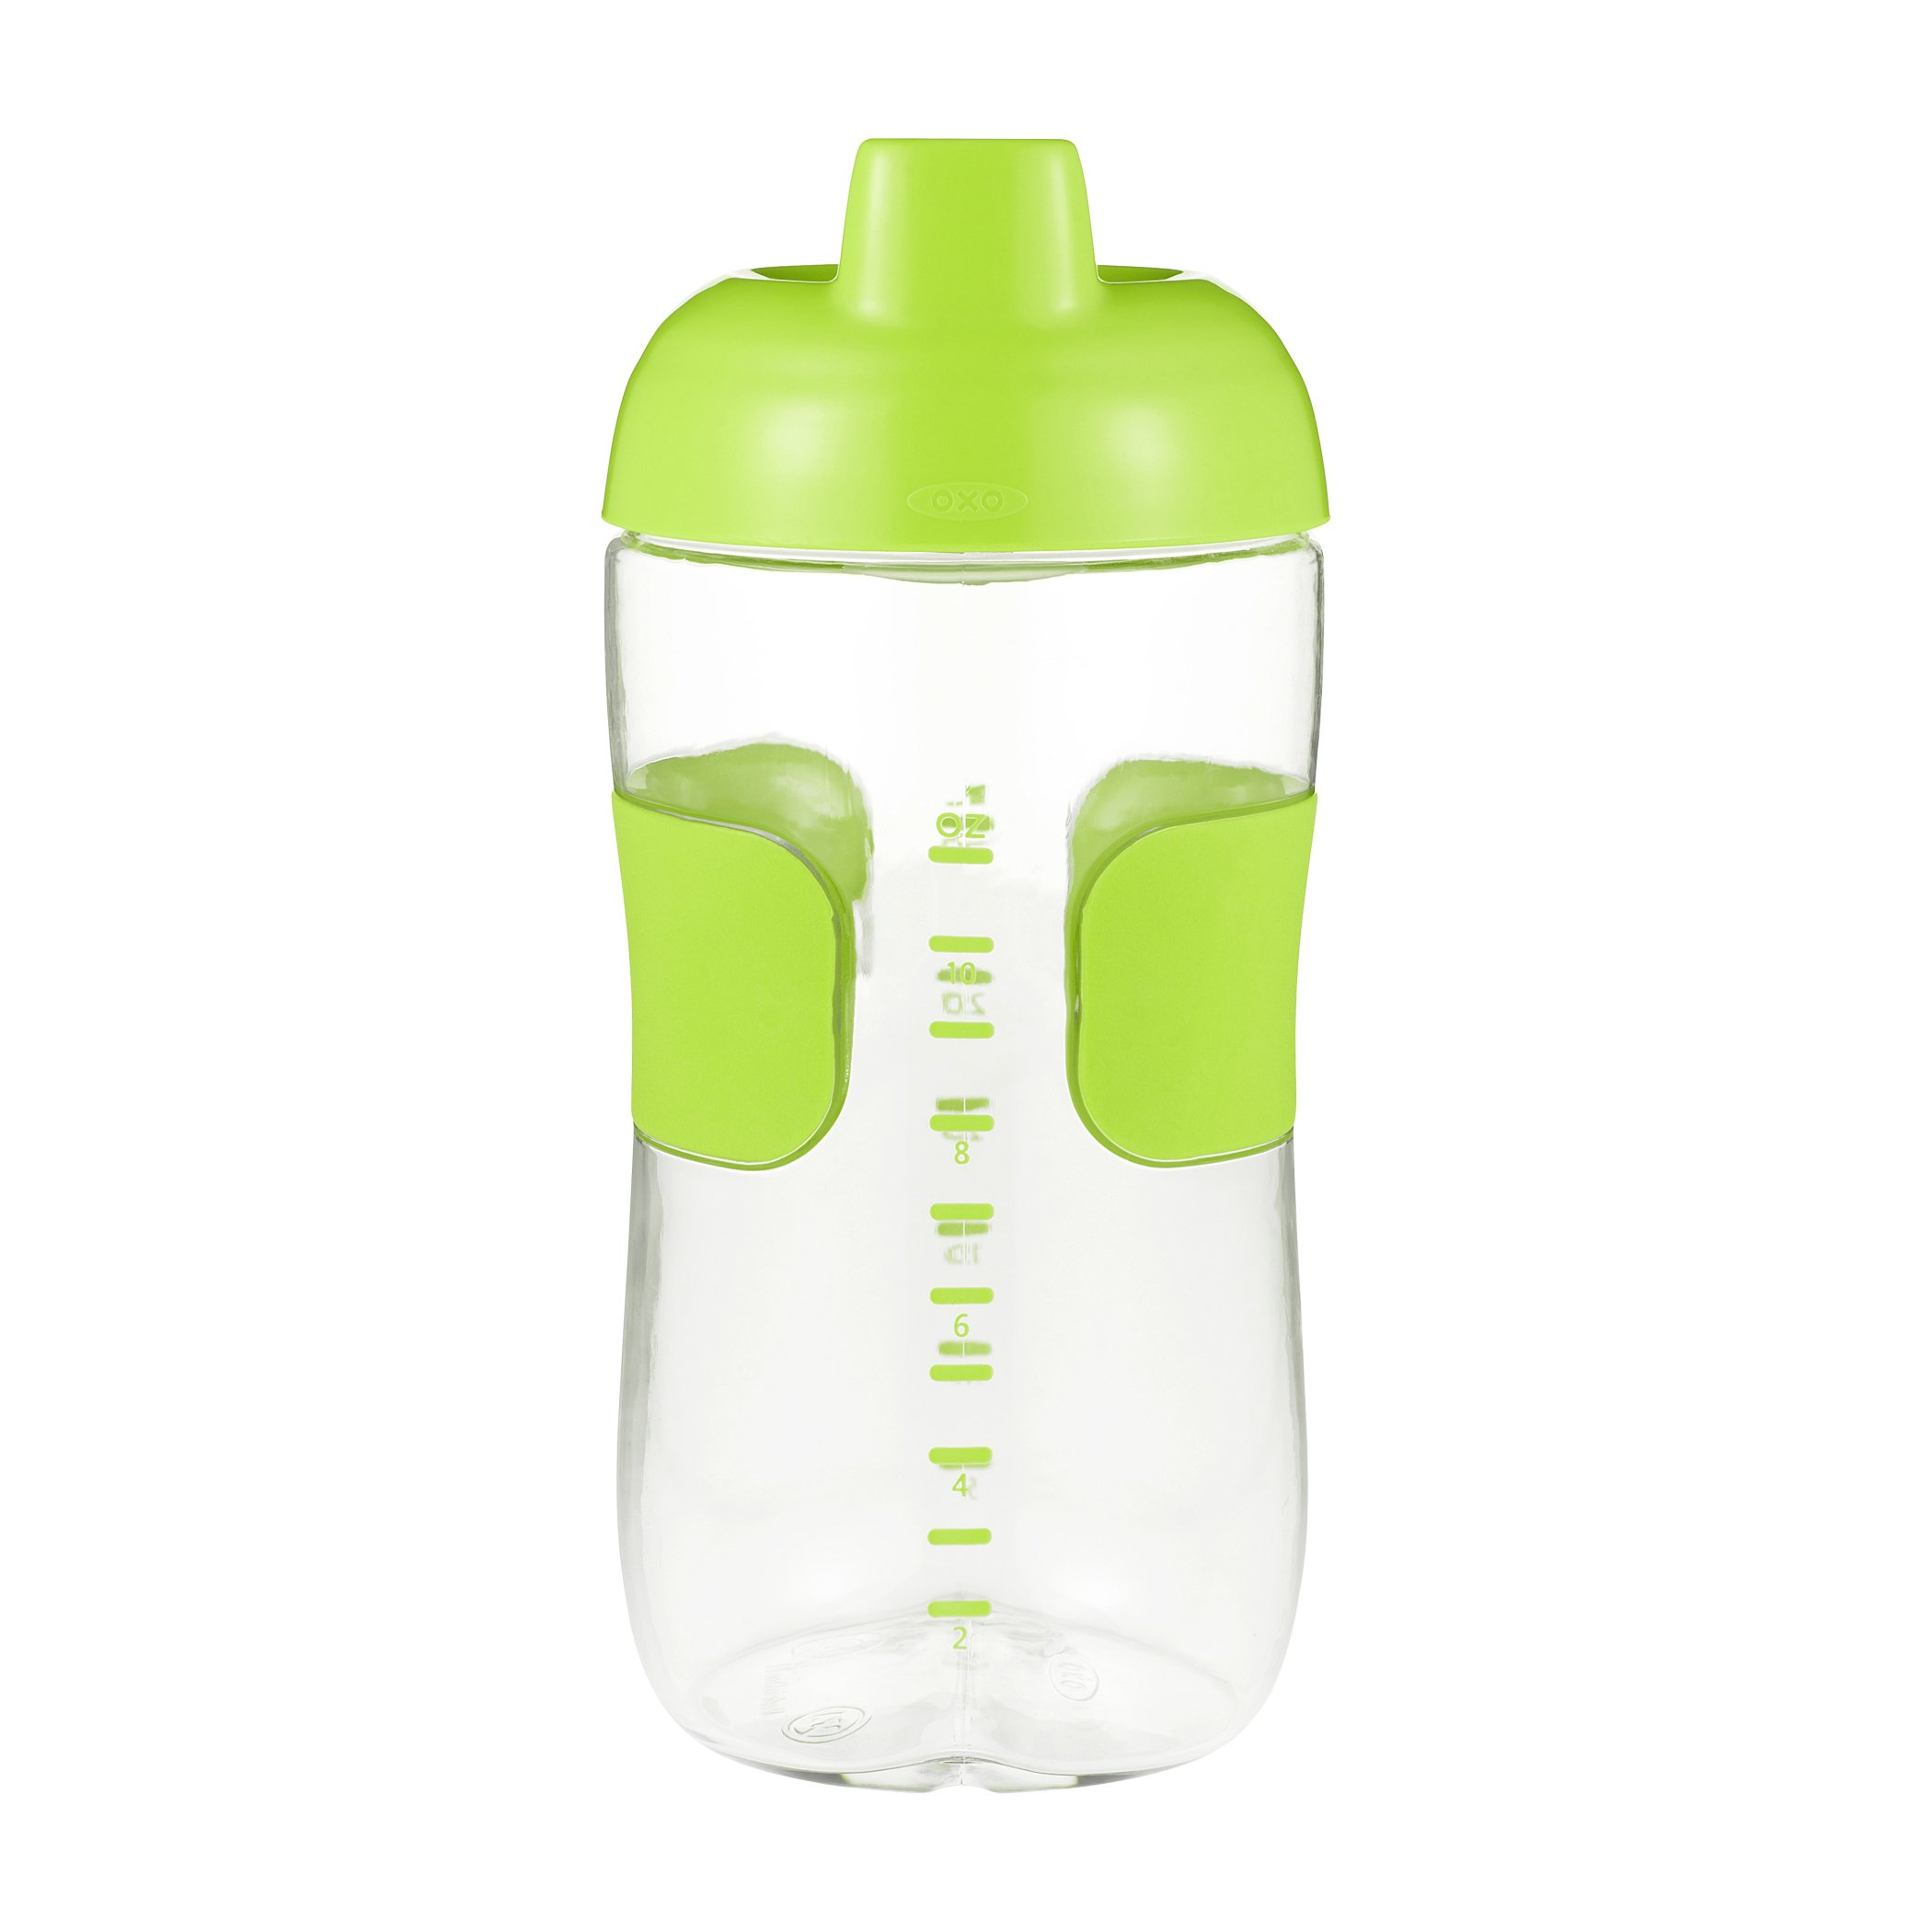 OXO Tot Sippy Cup with Leakproof Valve (11 oz.) Green